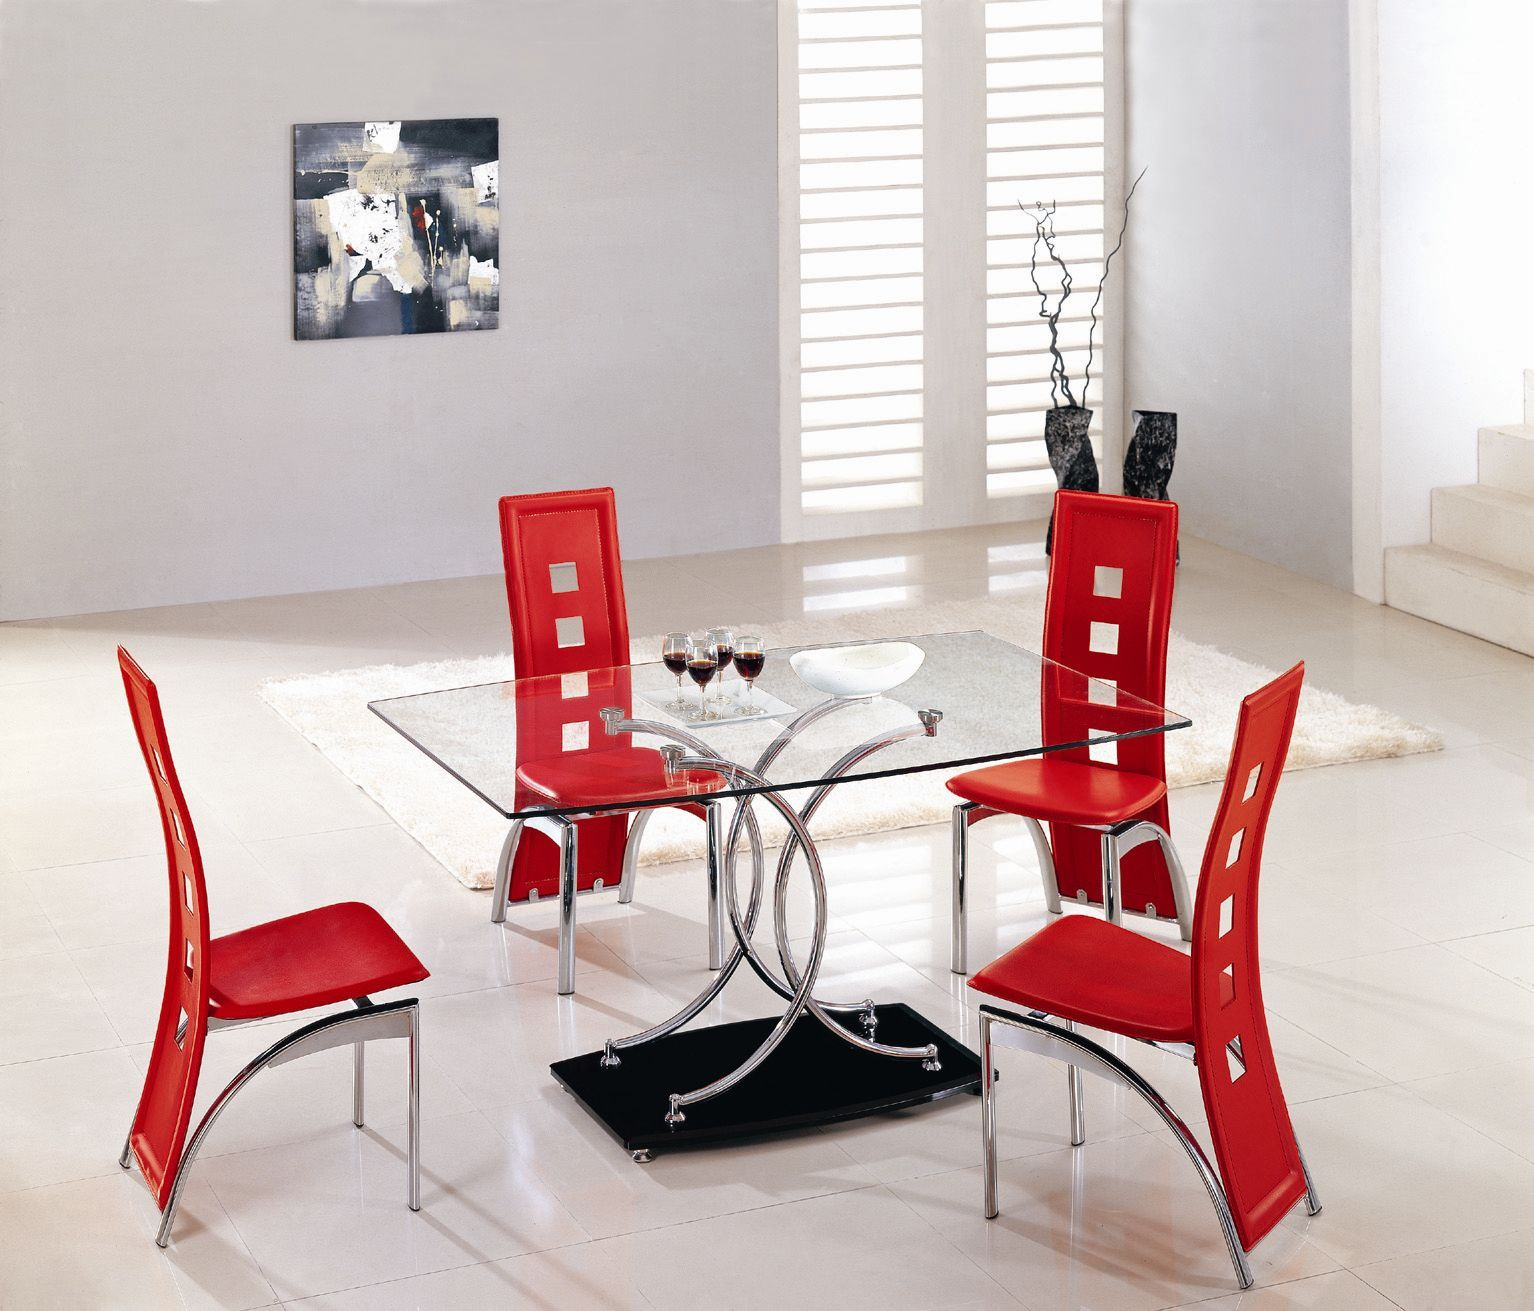 12 Modern And Unique Dining Table Designs  Furniture Ideas Amazing Decorating Ideas For Dining Room Table Review